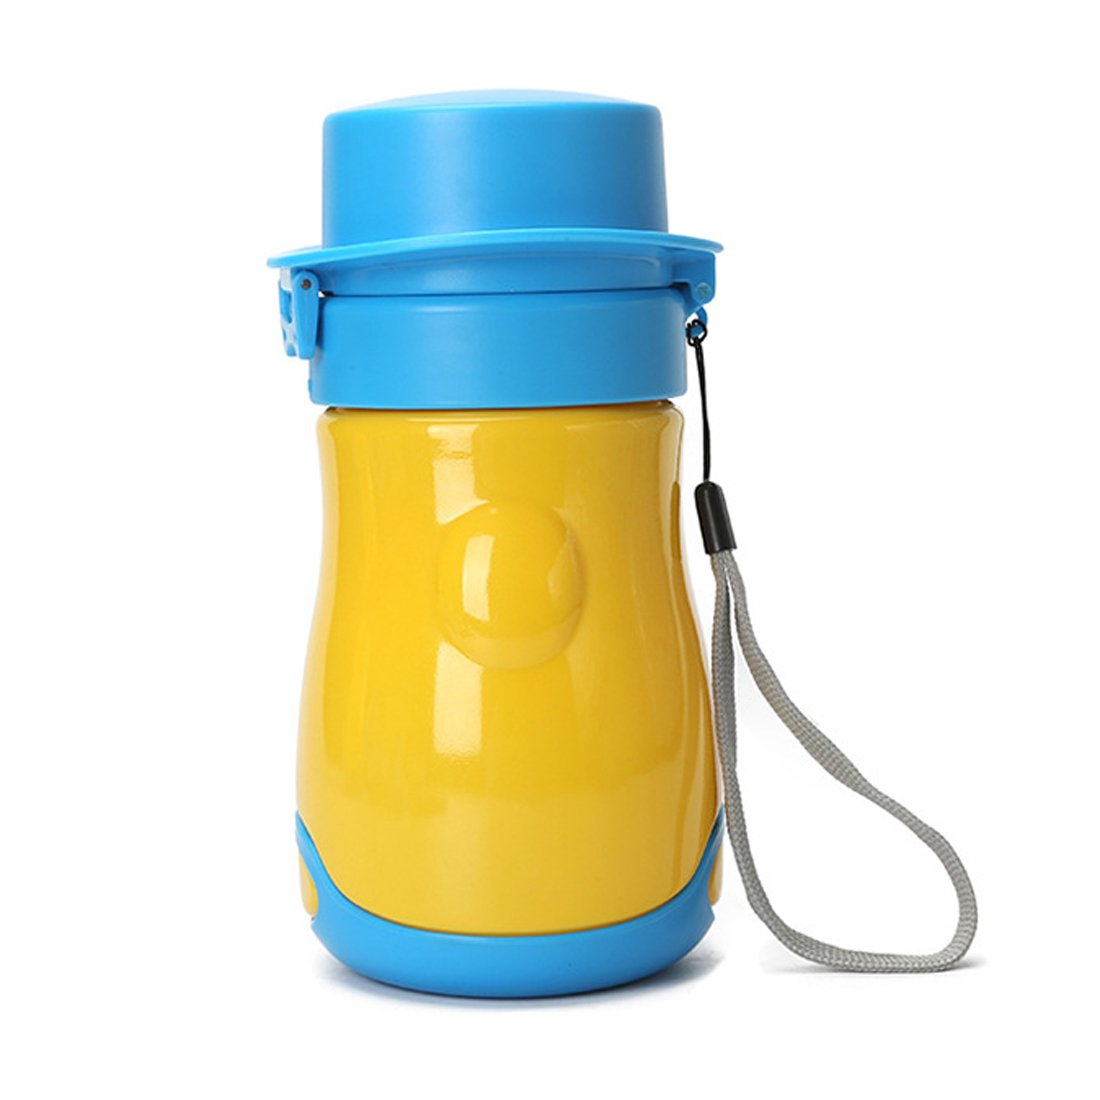 Upgrade Baby Boy Portable Potty Emergency Urinal Toilet for Camping Car Travel (Yellow for Boy) Anbaituer